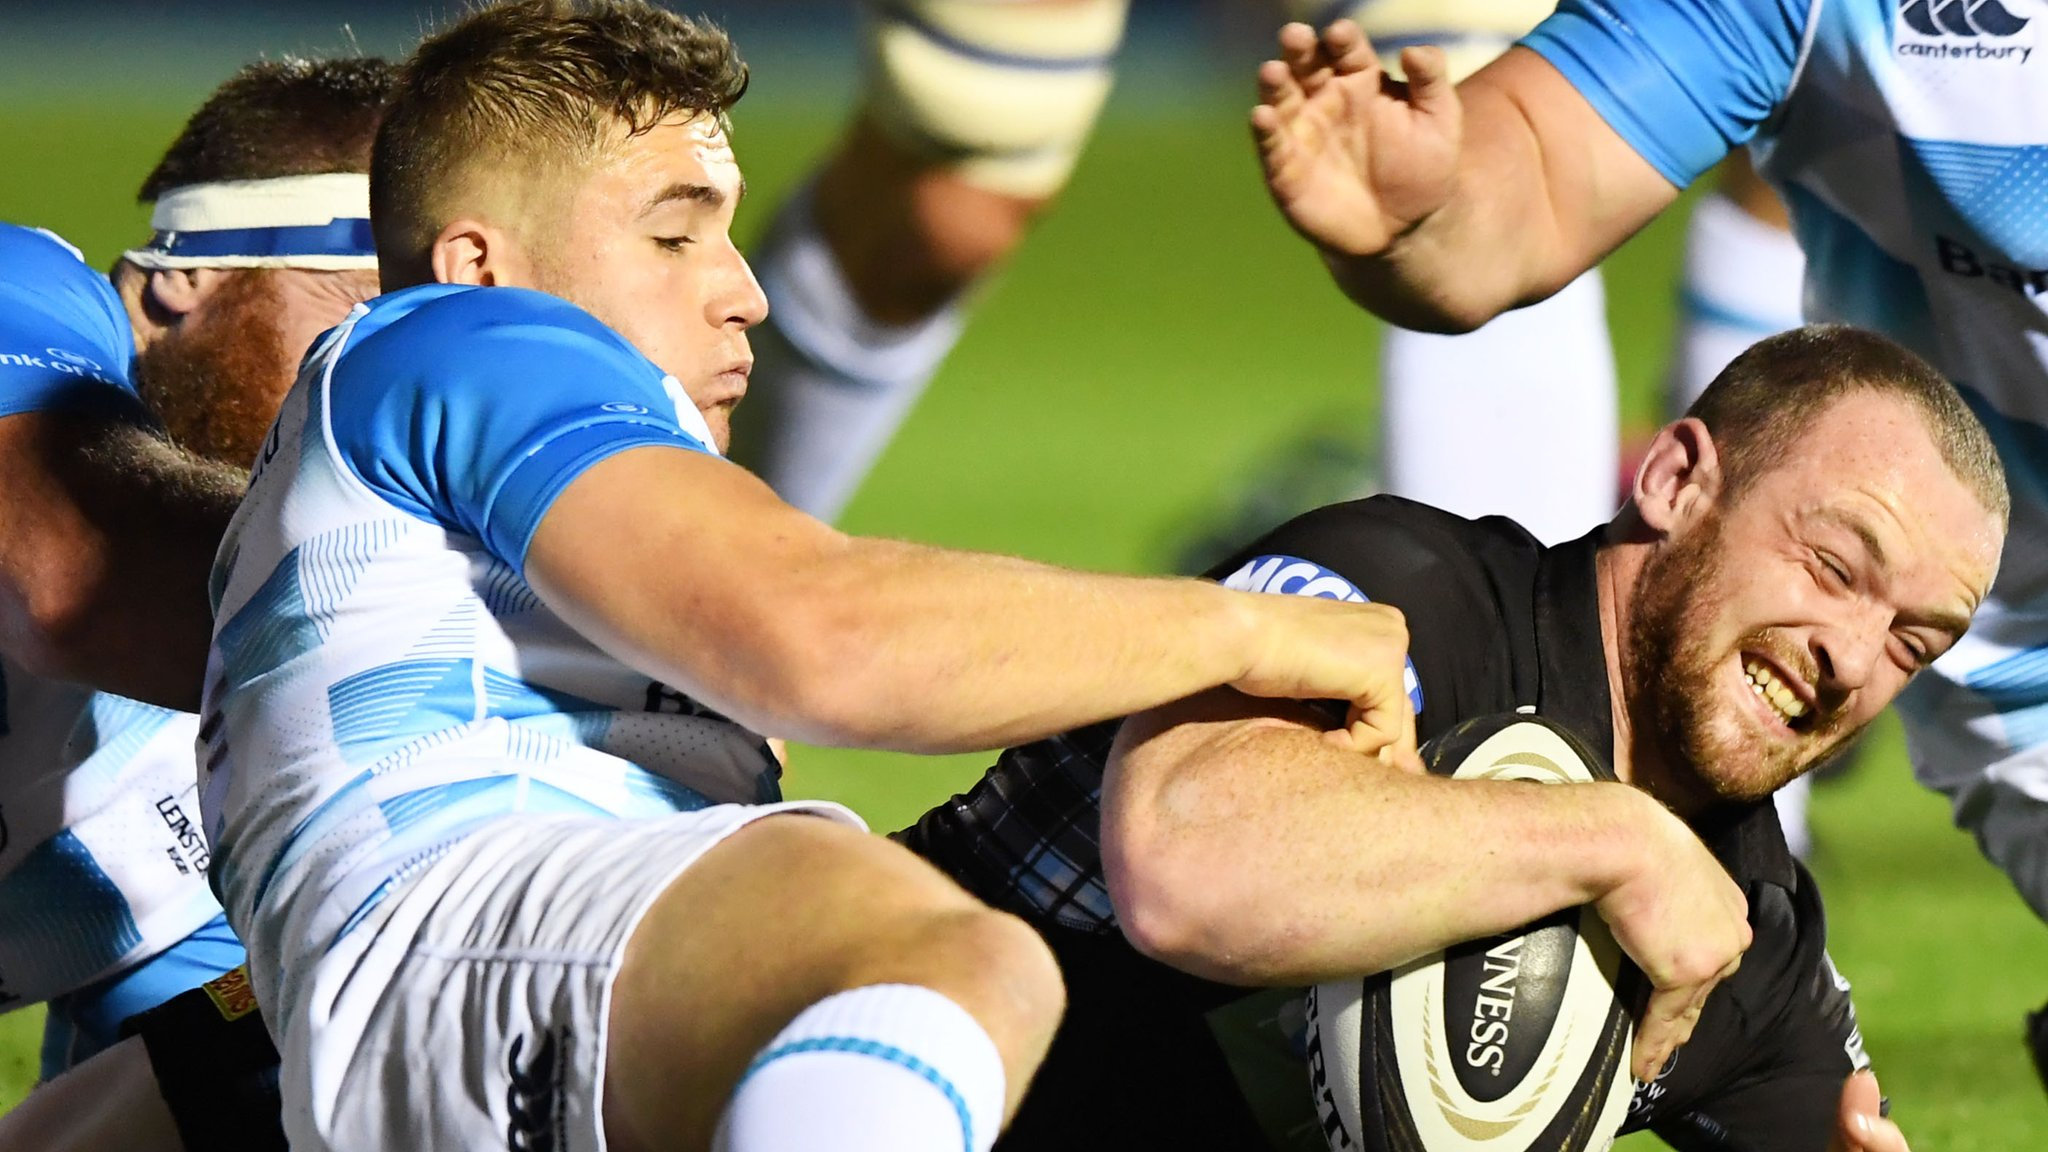 Glasgow Warriors v Leinster: Five key issues ahead of Pro14 final